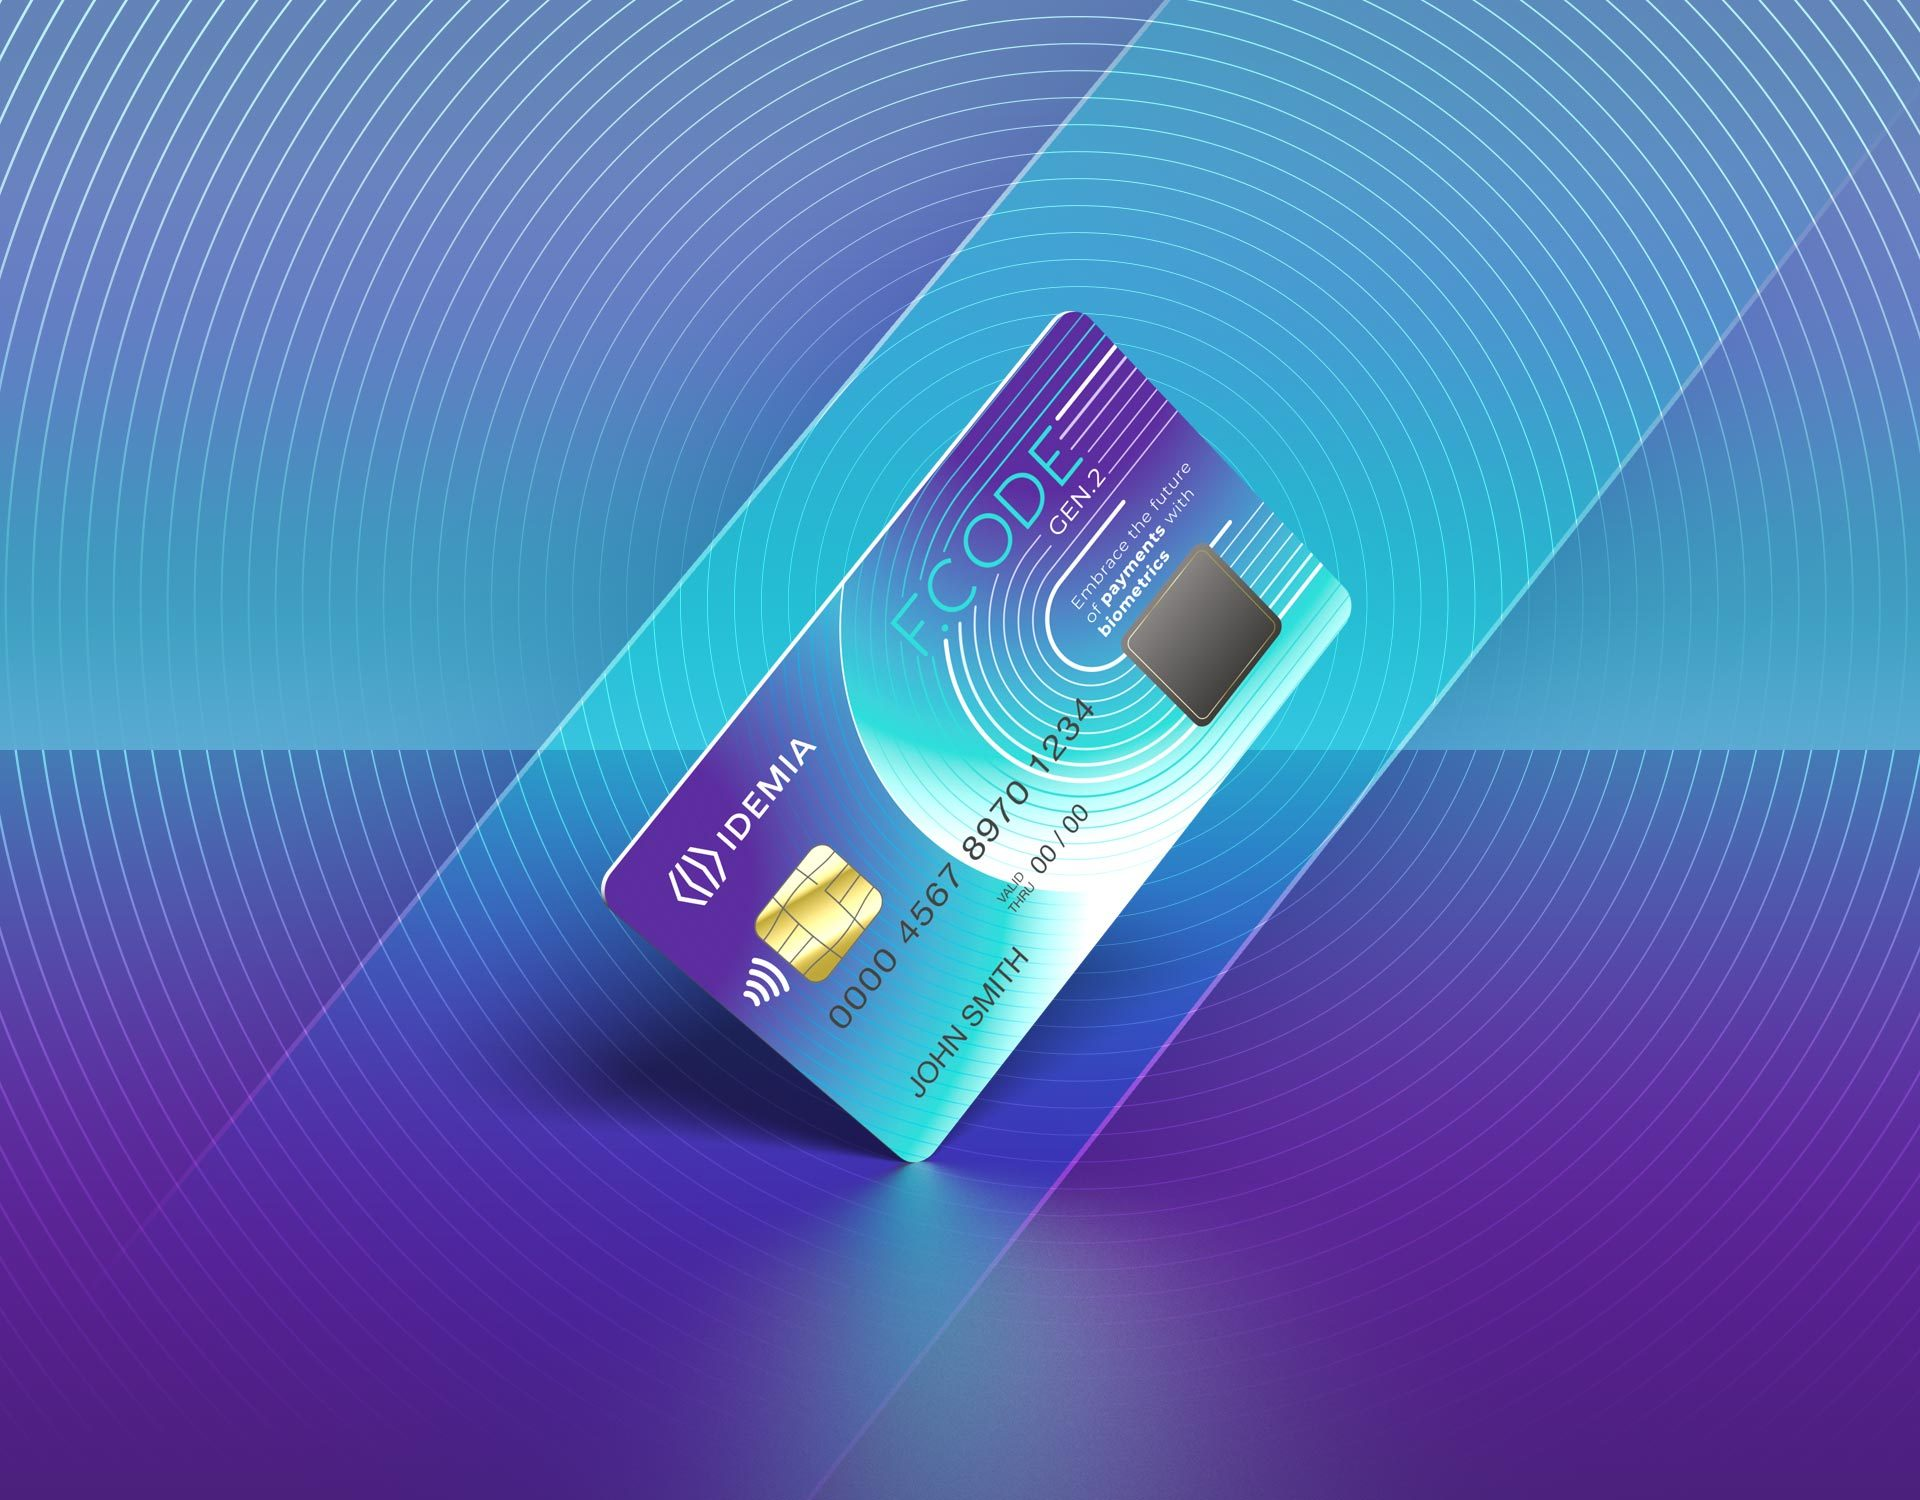 IDEMIA to launch new biometric cards in India